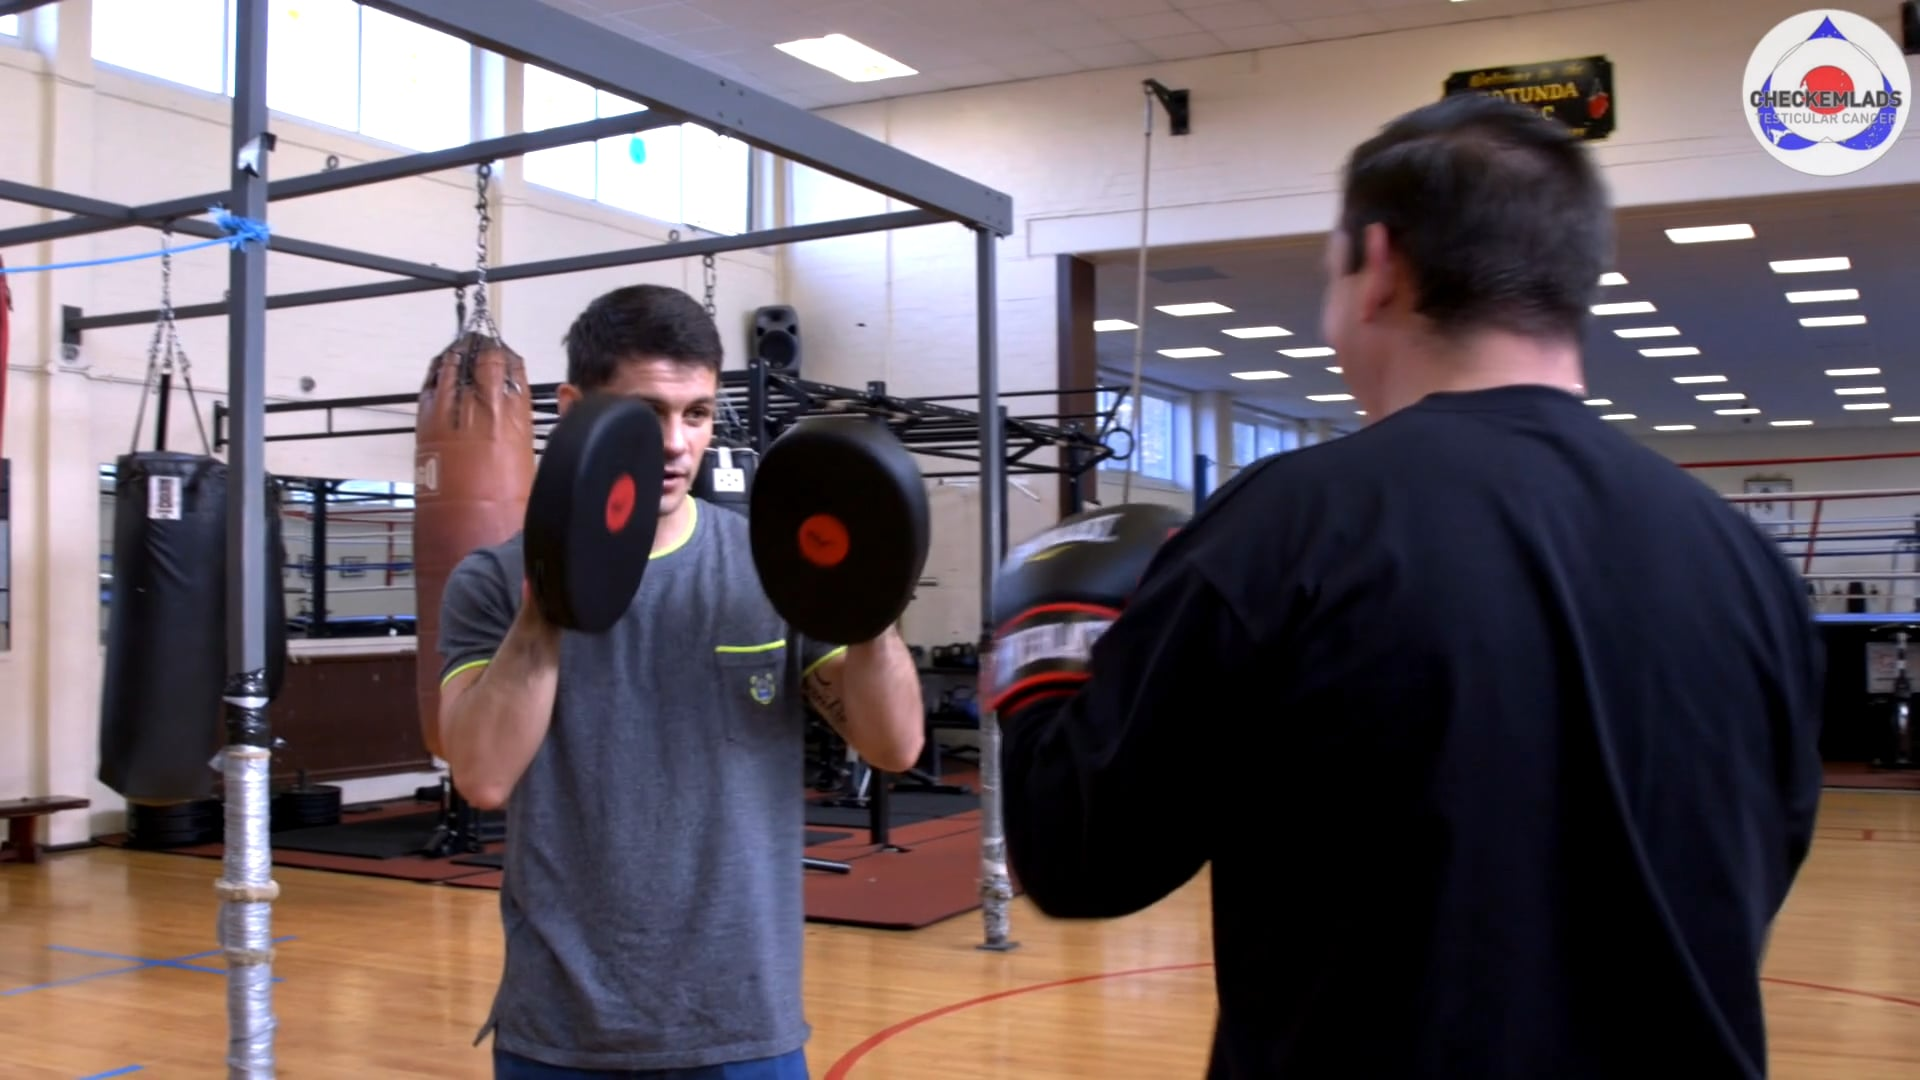 Survivors talk about testicular cancer and learn boxing with World champions